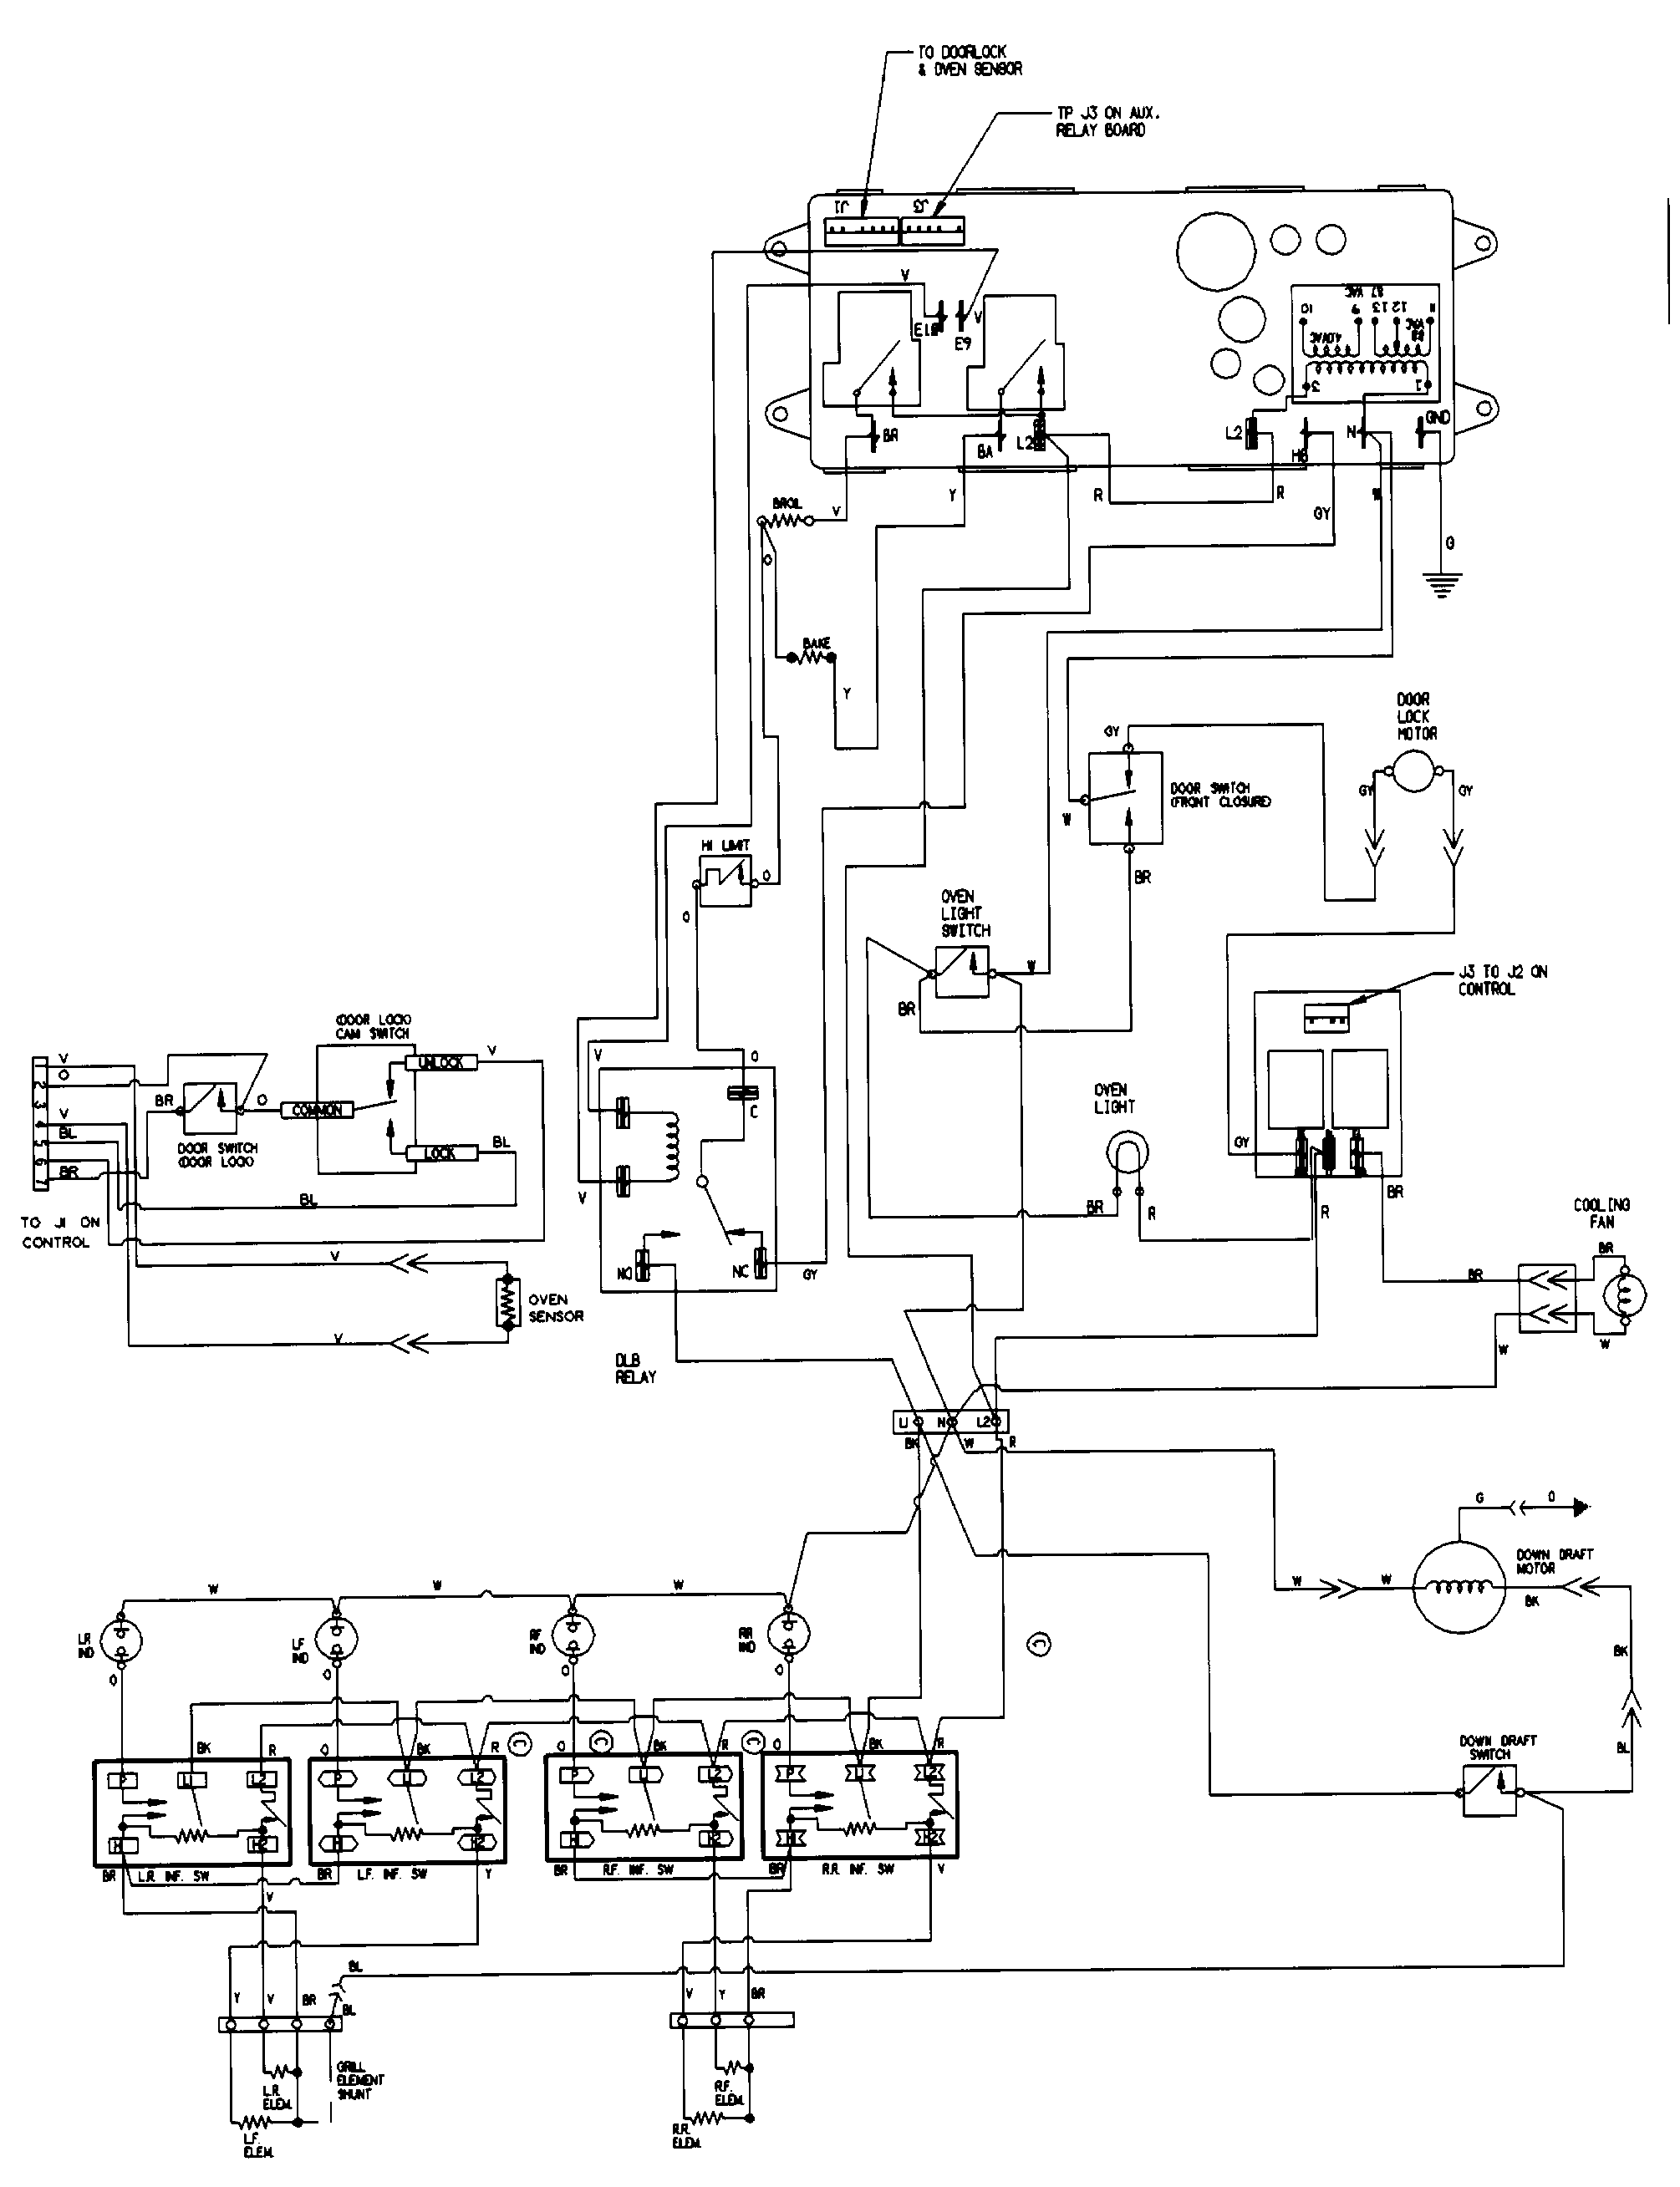 Creda Deep Fryer Wiring Diagram